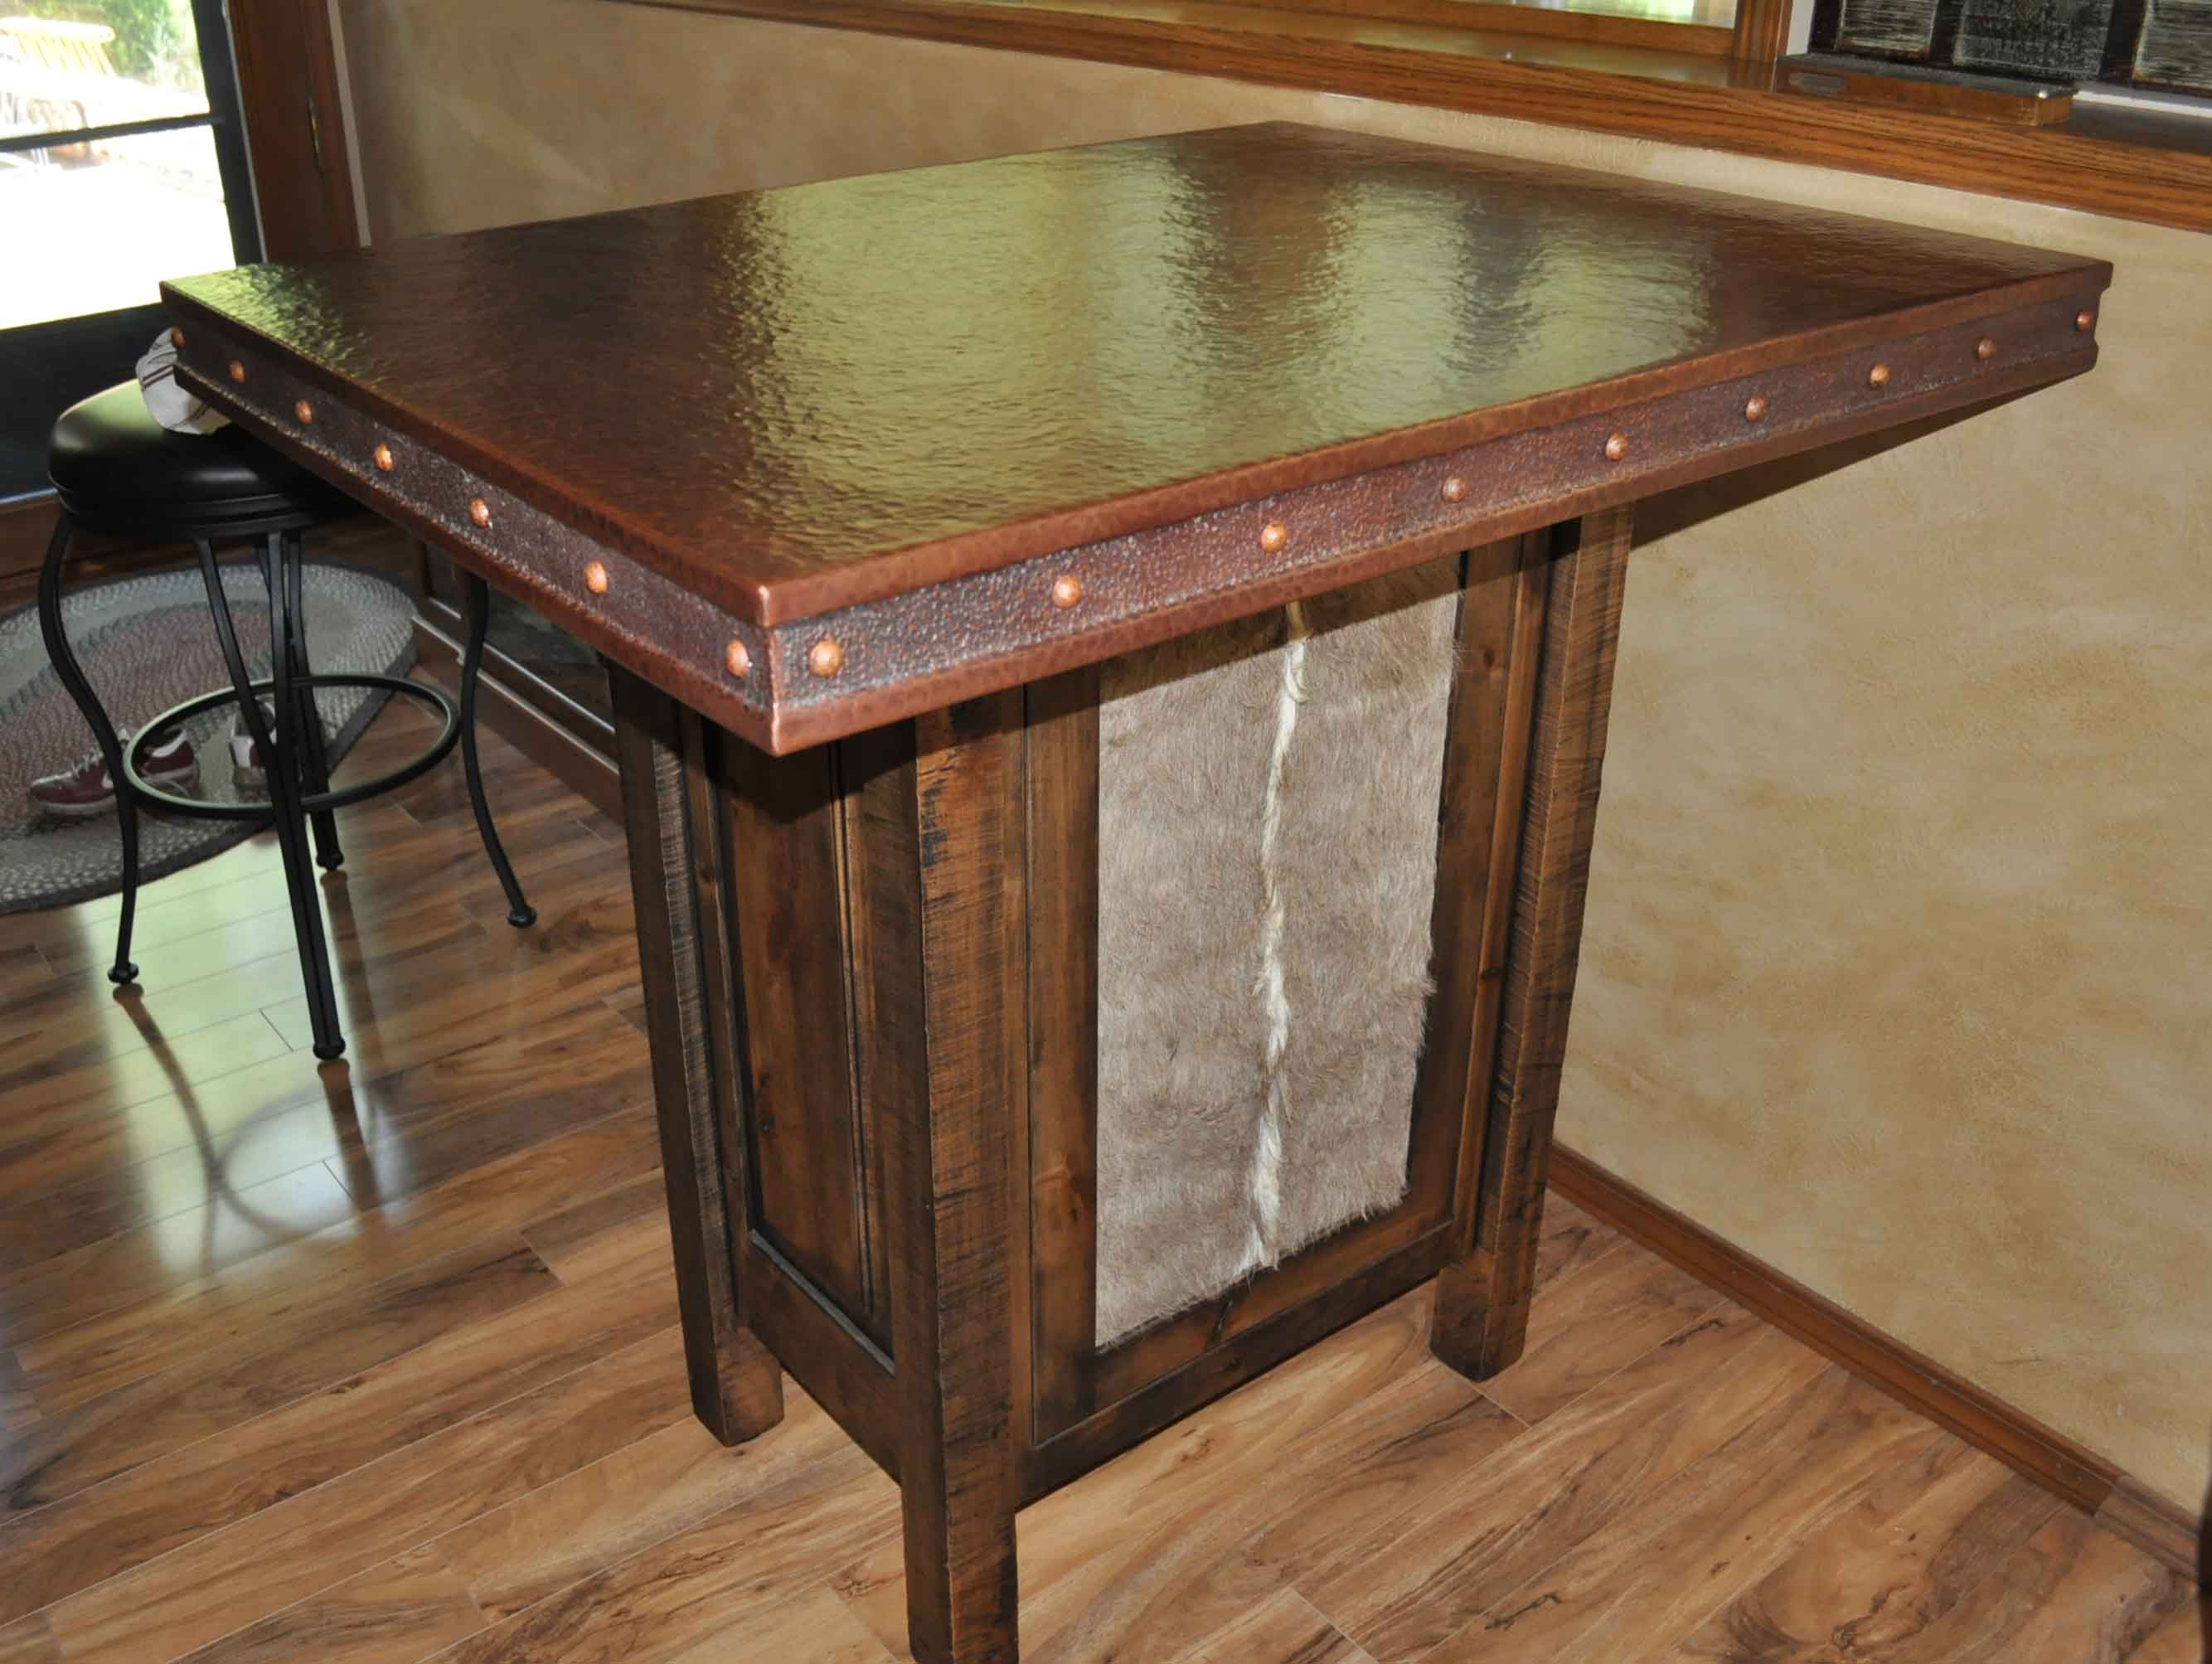 Merveilleux Hand Crafted Rustic Copper Table Top